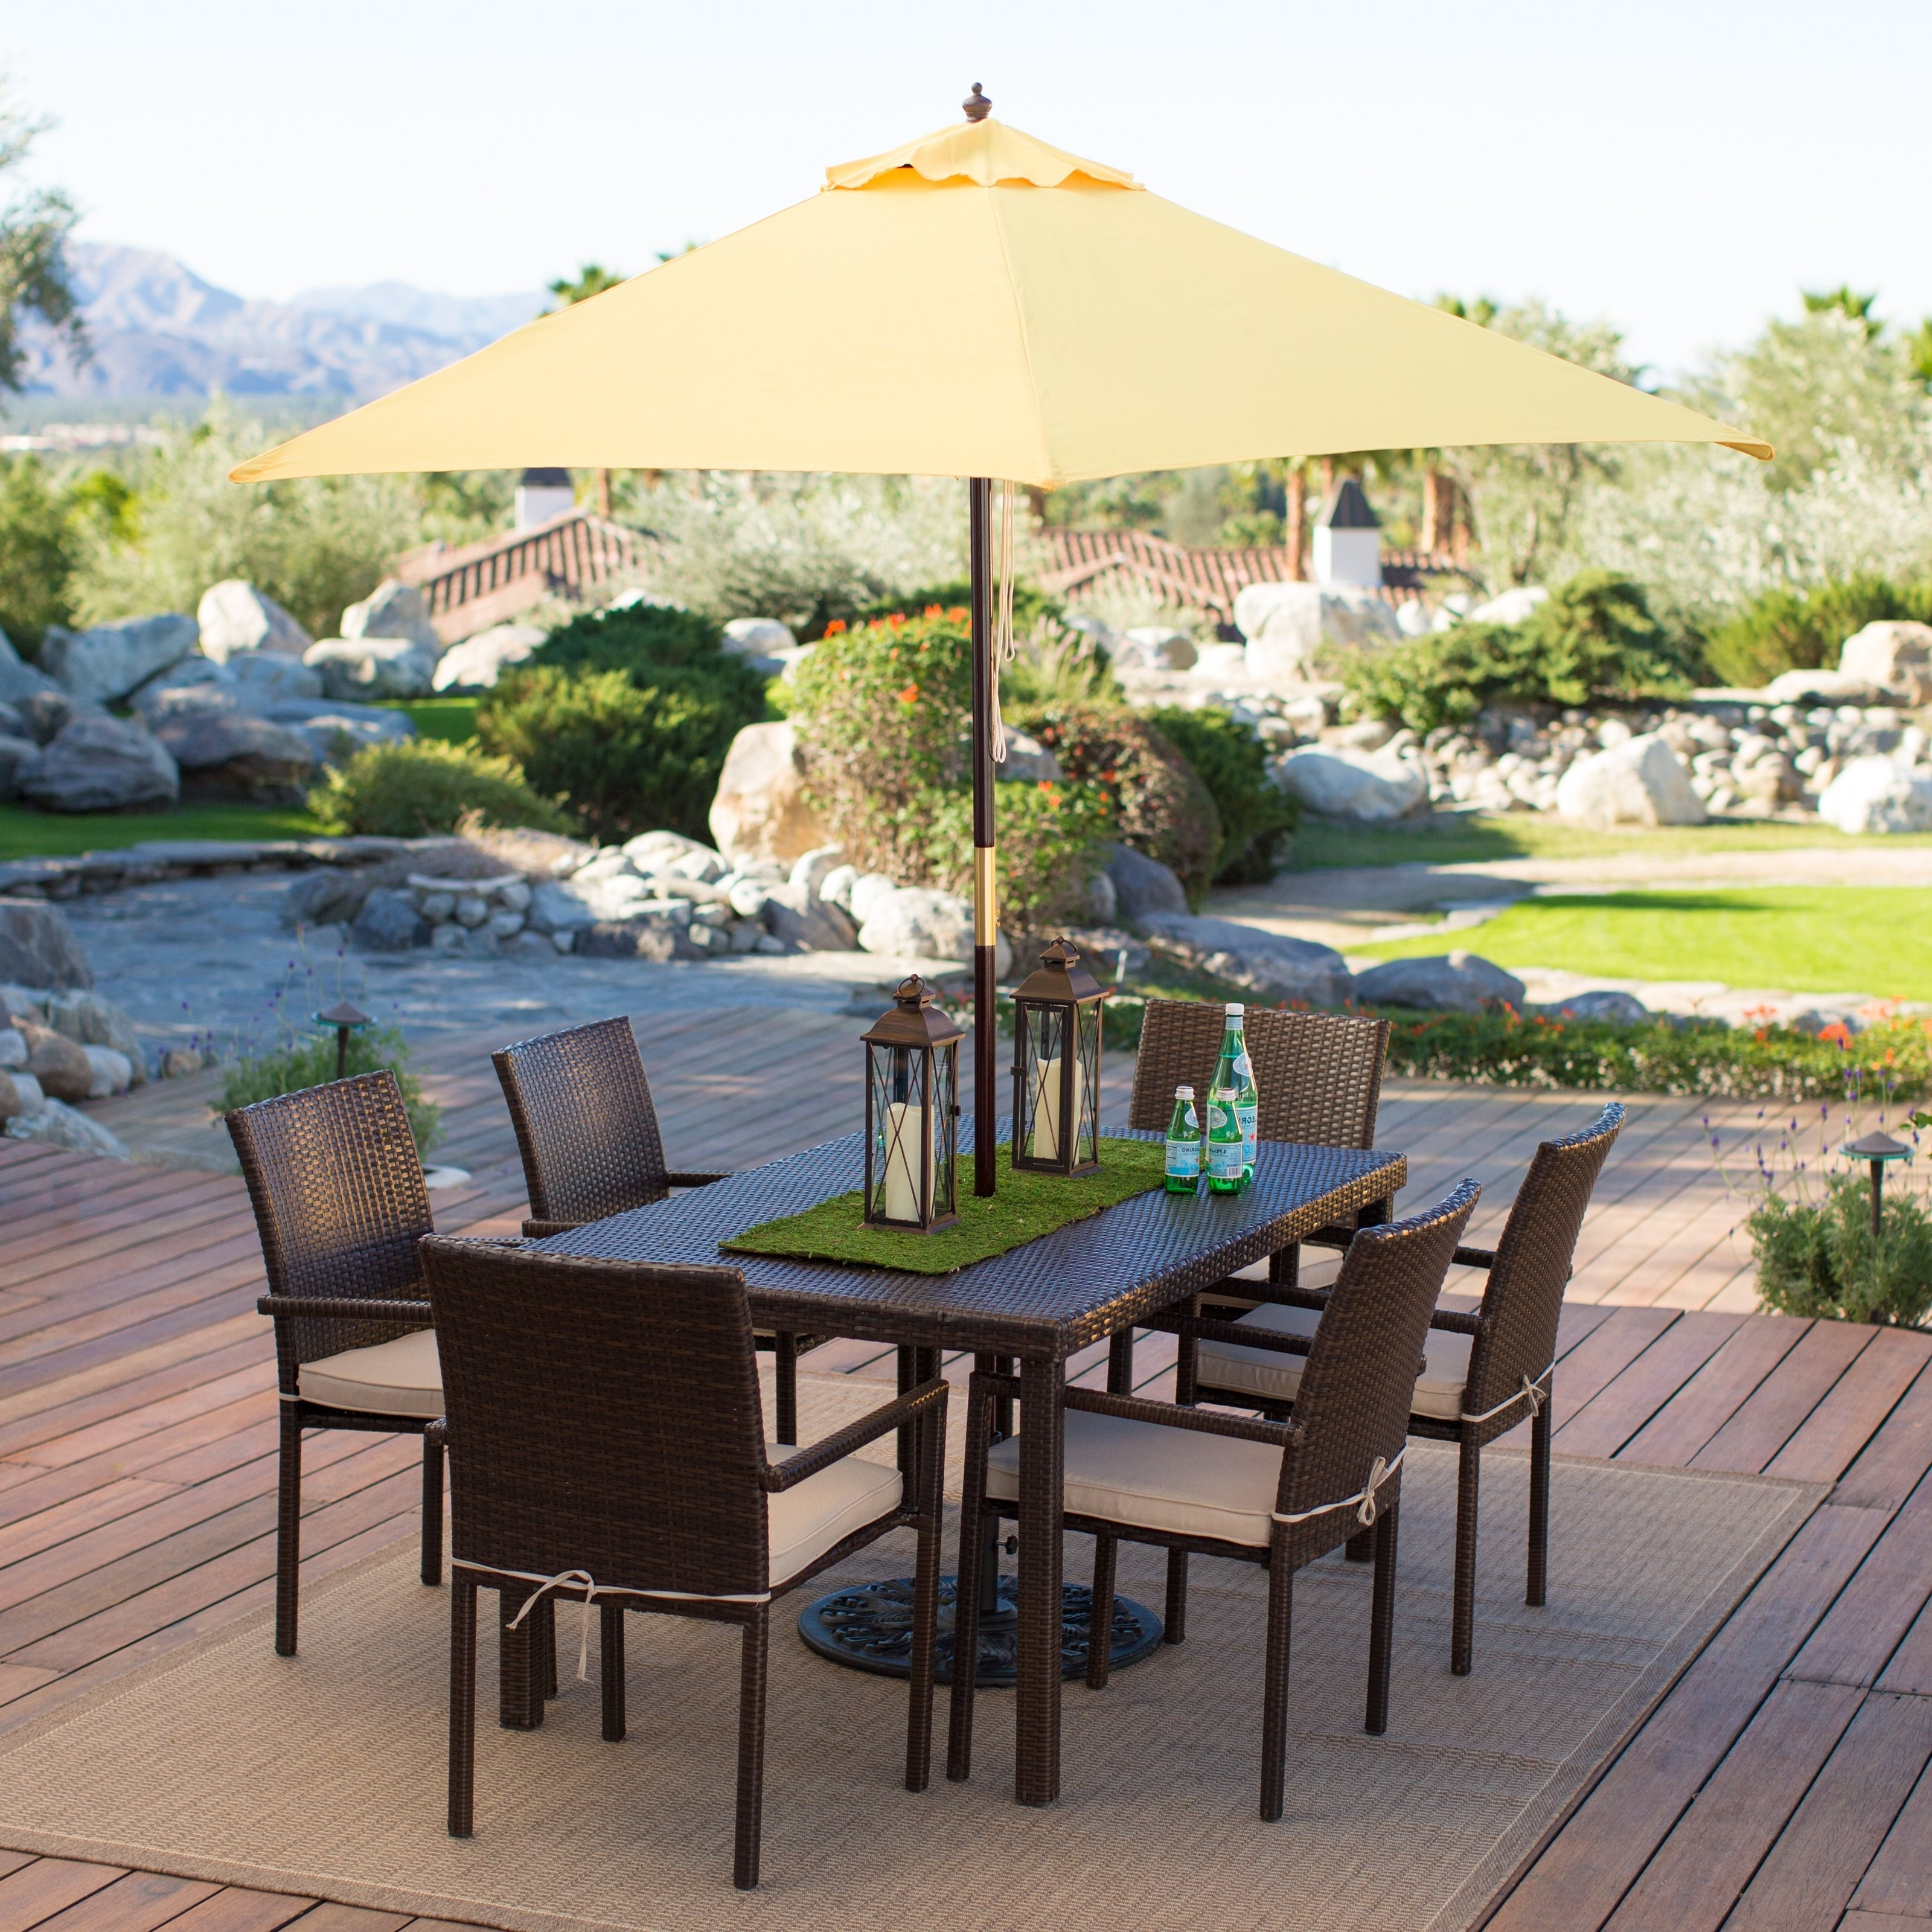 Best And Newest Ideas Fantastic Offset Patio Umbrella For Furniture Ideal Home Intended For Target Patio Umbrellas (View 1 of 20)